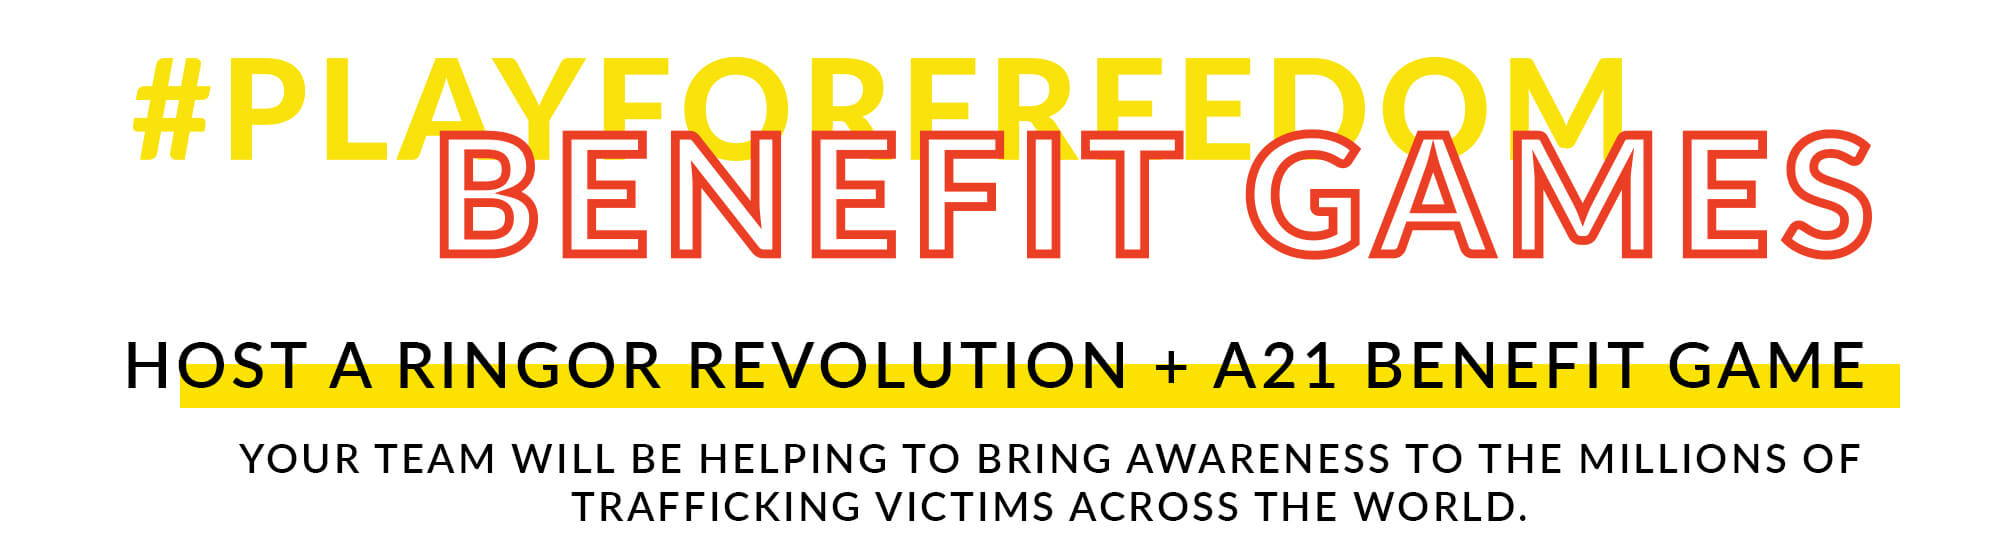 Host a Play For Freedom Benefit Game to help bring awareness to human trafficking victims.